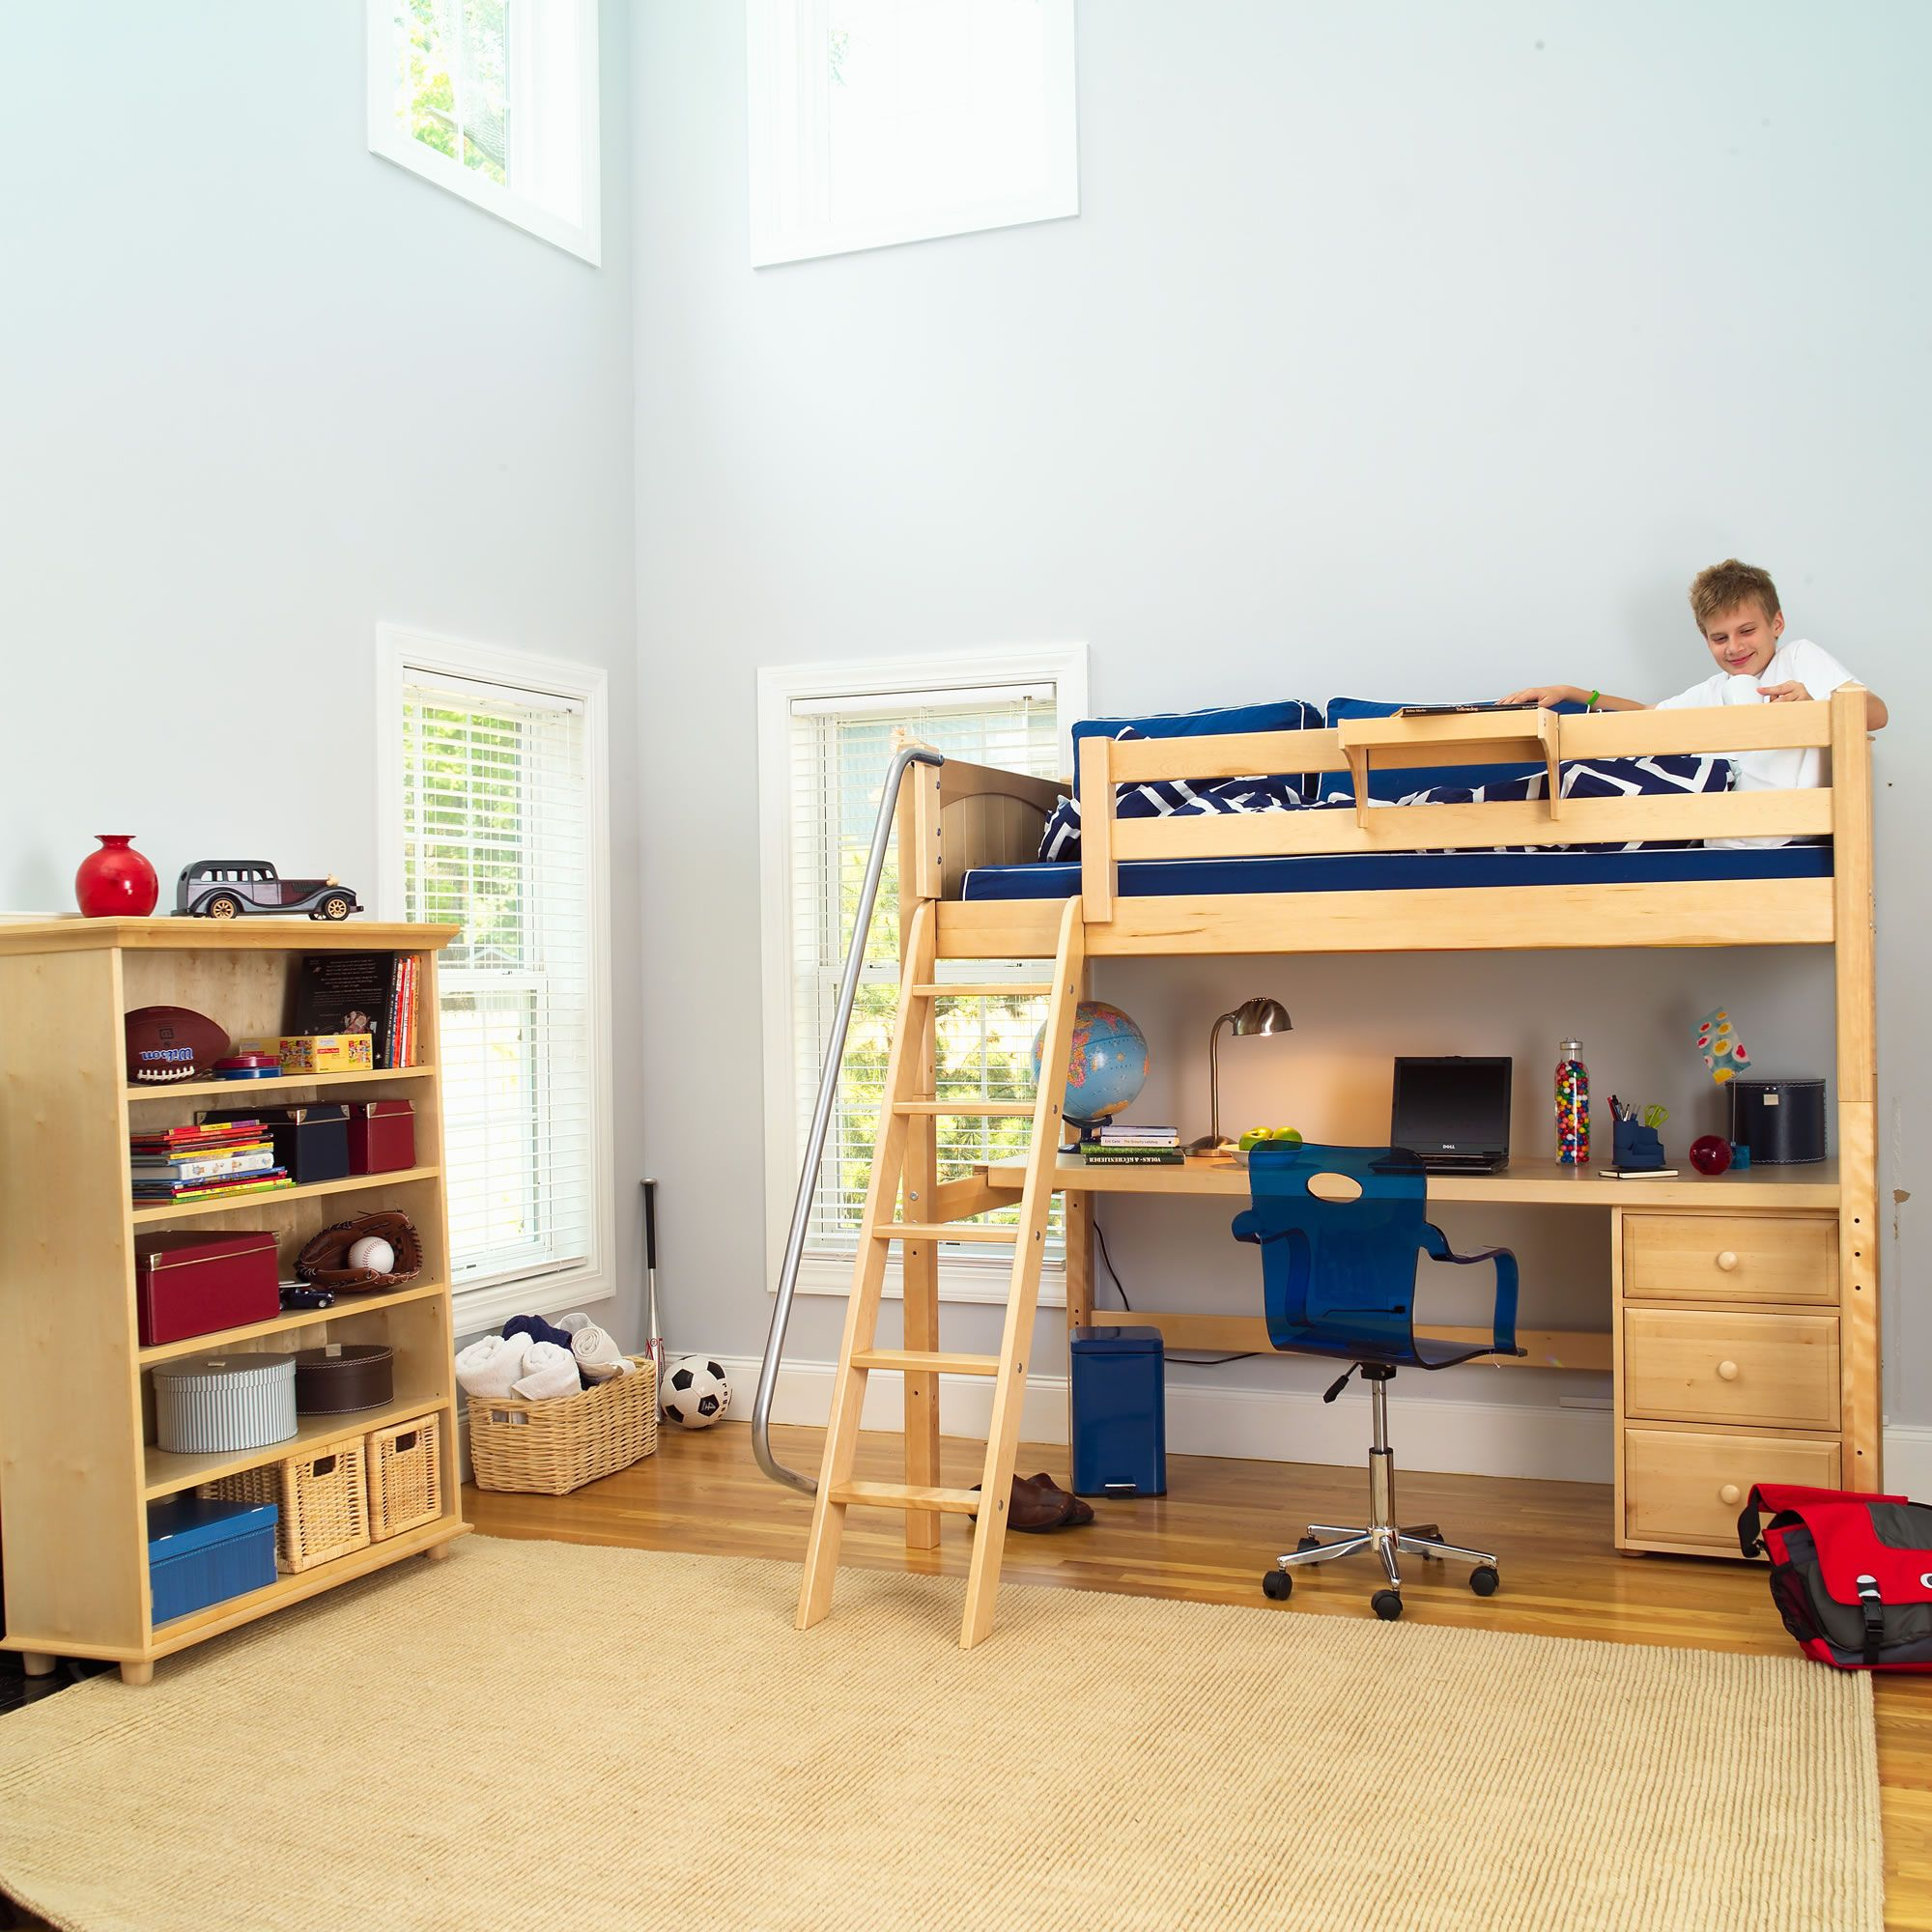 Adorable Loft Bed With Long Stair Inspirational | loft bed ...